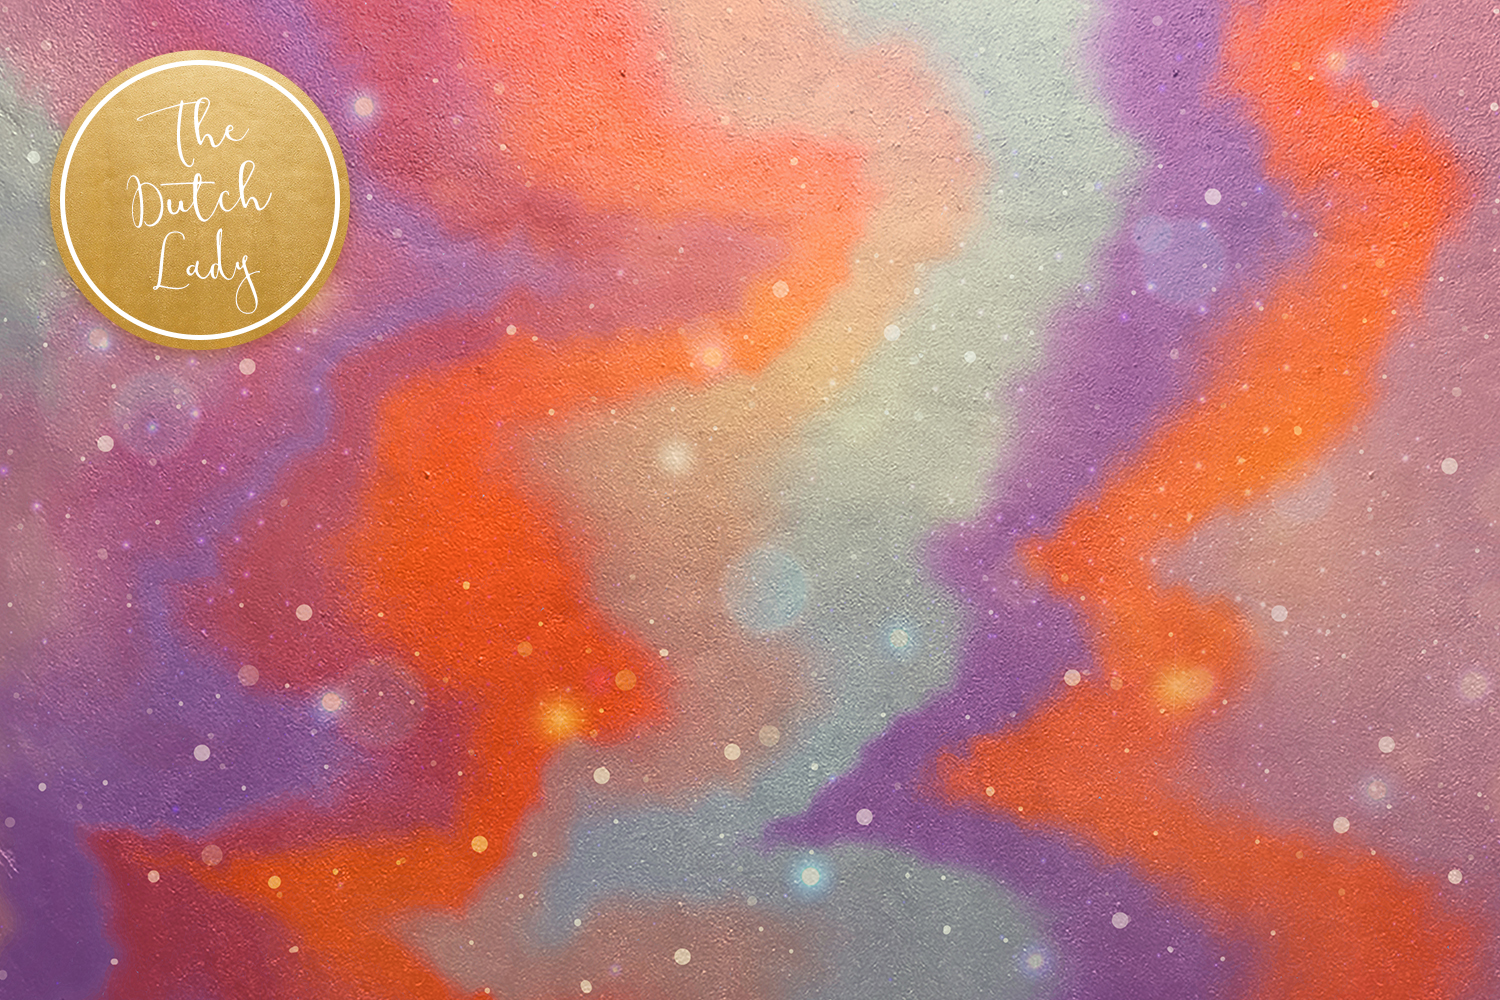 Digital Backgrounds & Papers - Oils & Marbles example image 4